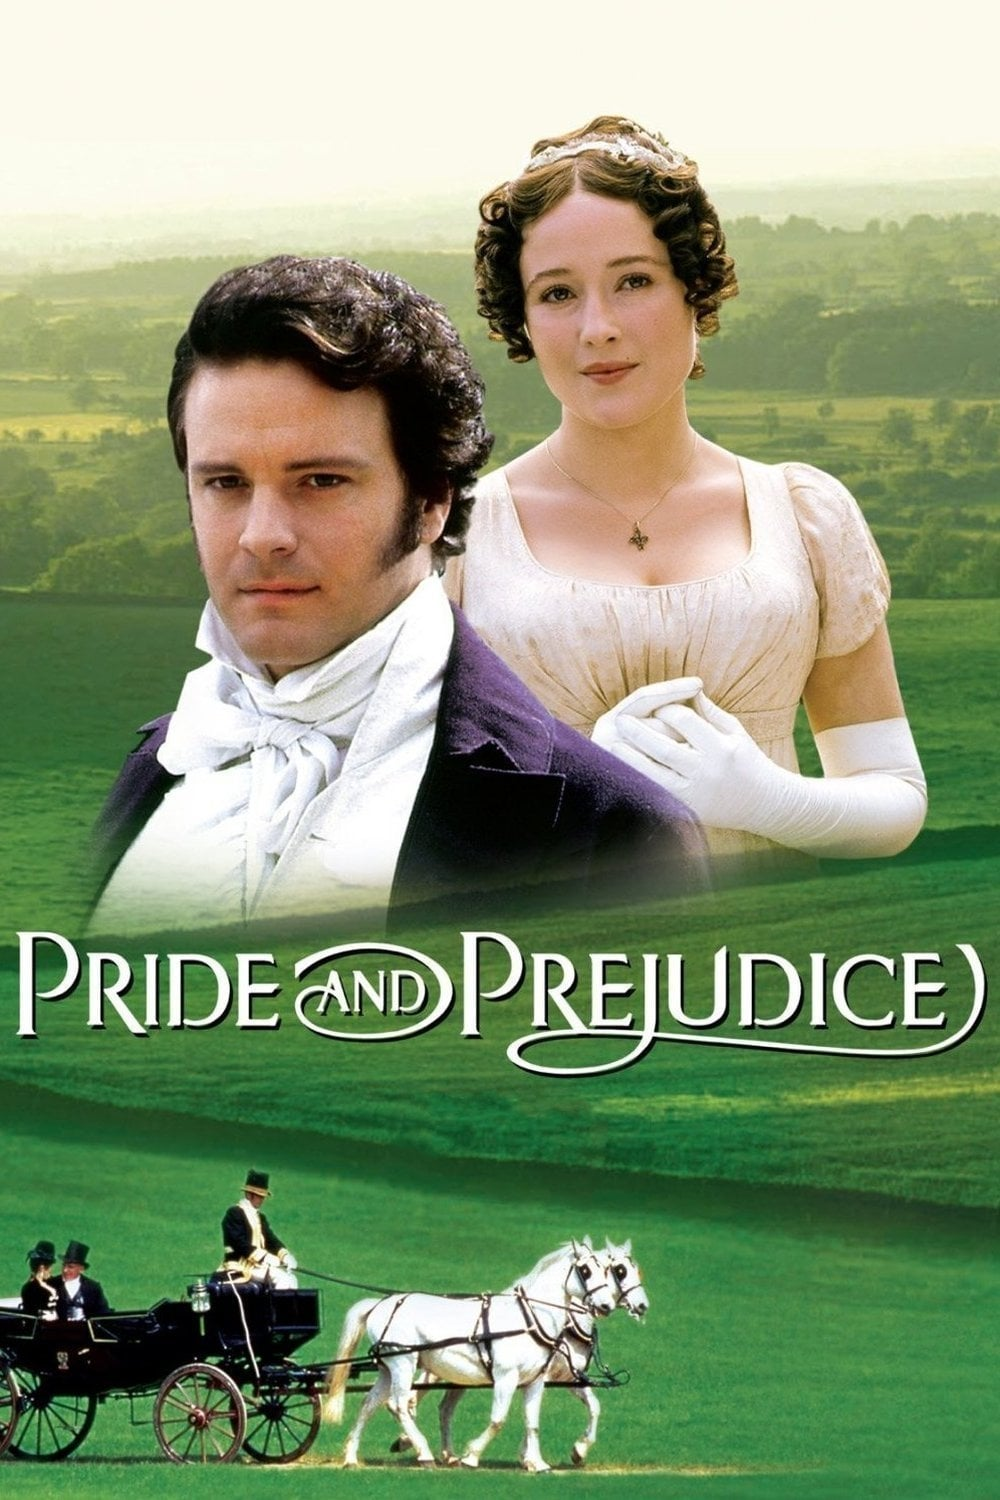 Pride and Prejudice TV Shows About Class Differences